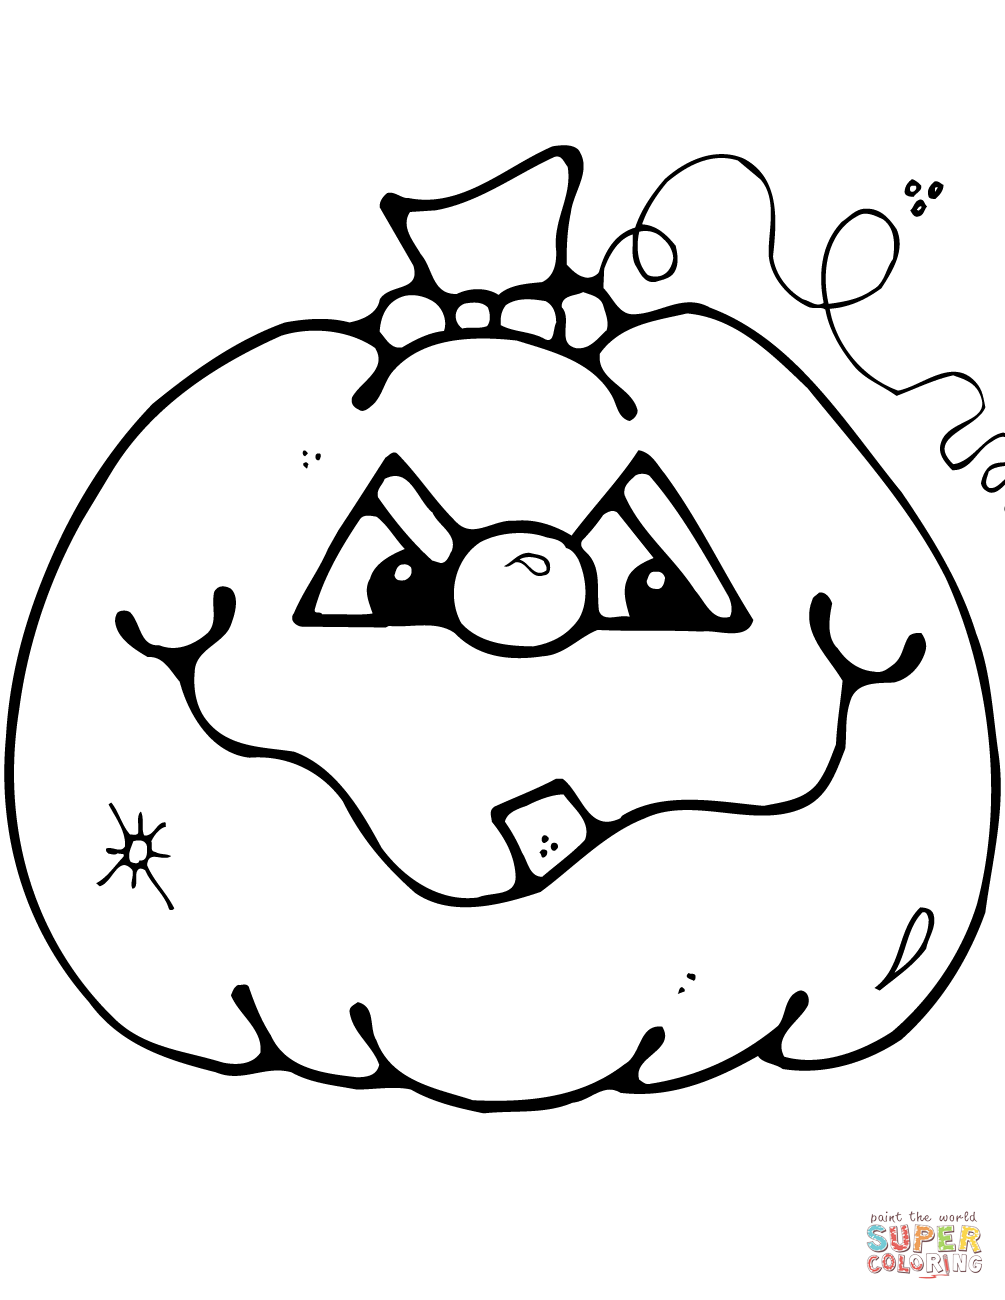 Happy jack o lantern clipart black and white picture royalty free download Jack O Lantern Black And White | Free download best Jack O Lantern ... picture royalty free download